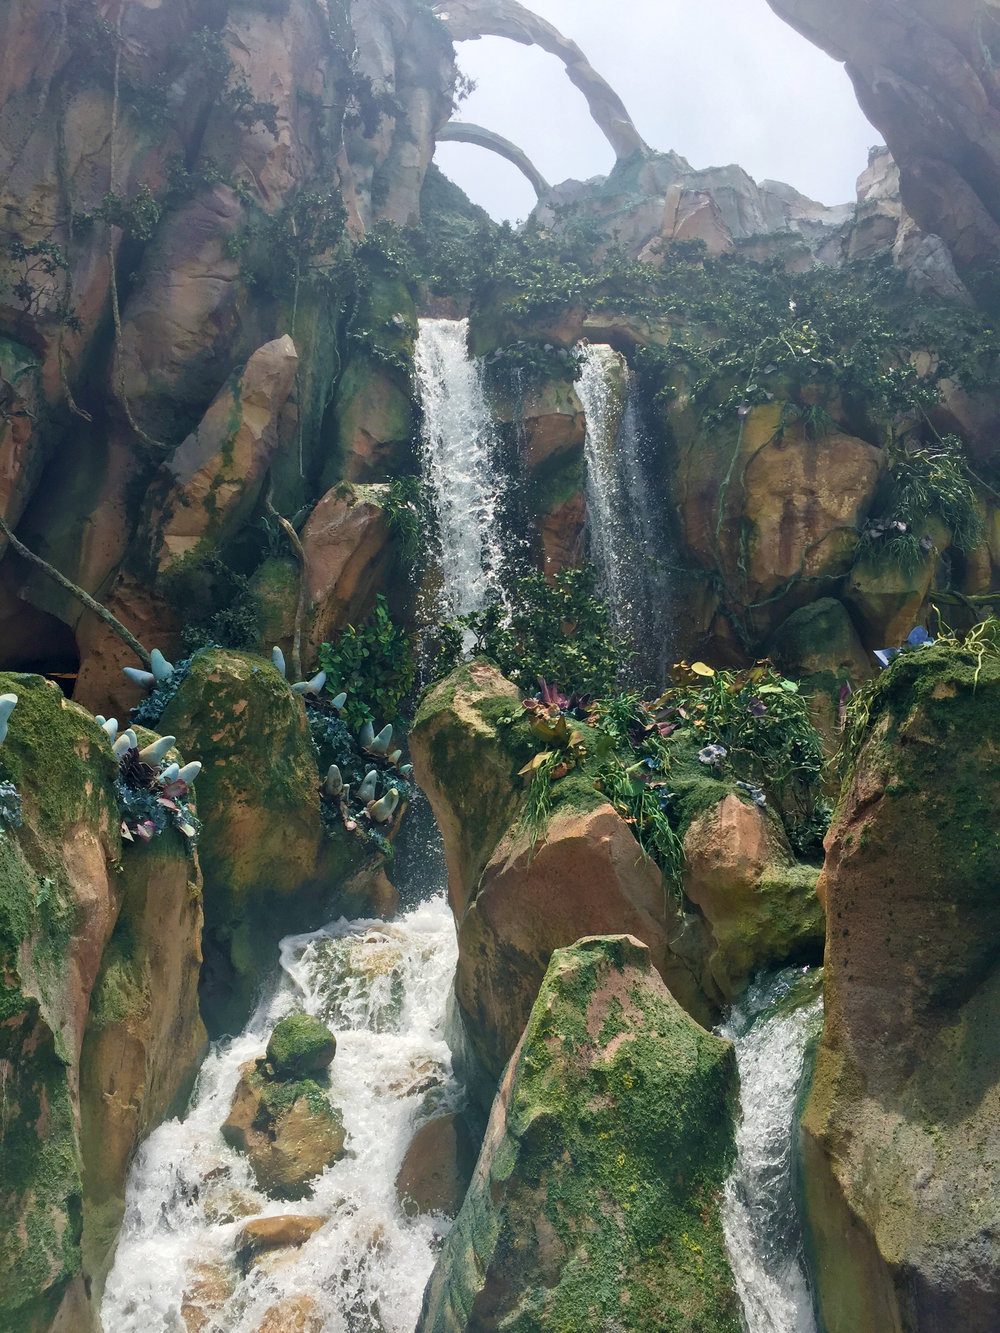 Even if you fastpass Flight of Passage, you'll still get to see the majority of the amazing queue decorations, like this gorgeous waterfall!